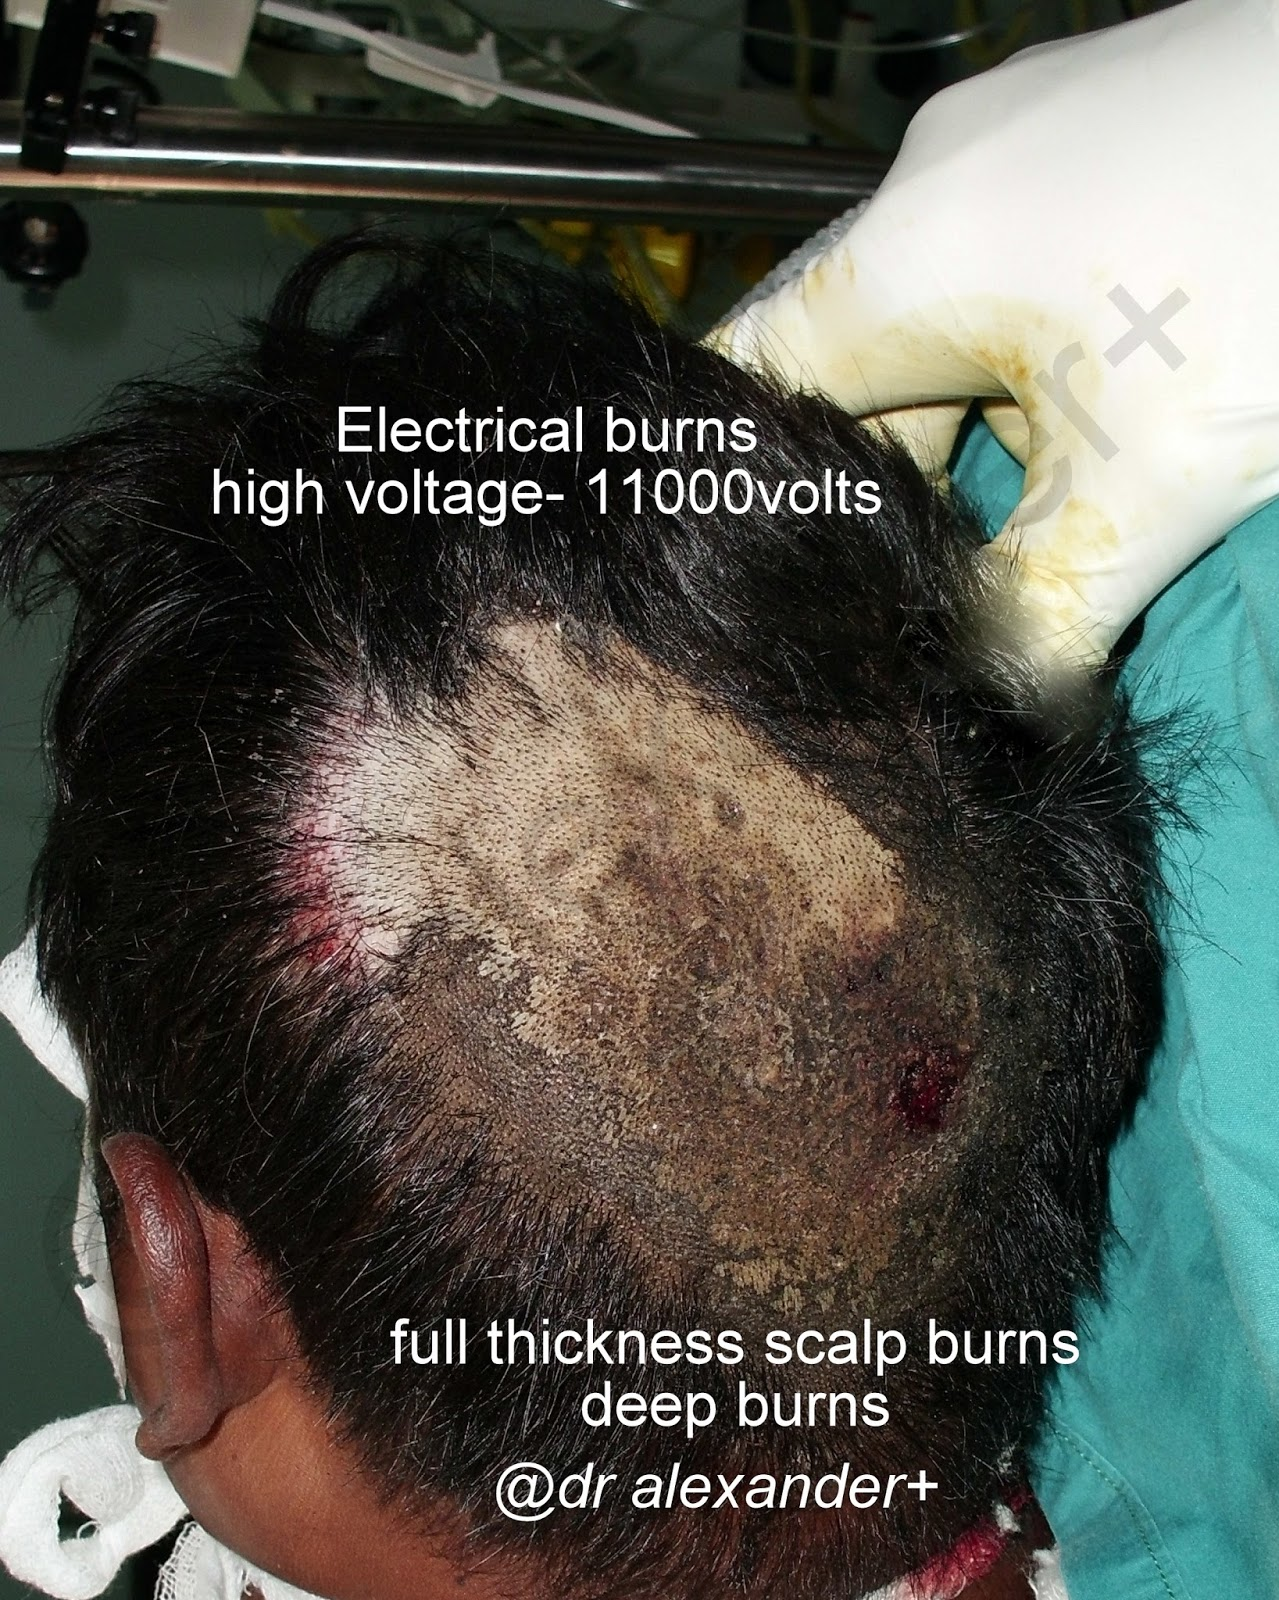 Cosmetic Plastic Surgeon Treating Complex Burn Injuries Accidents Alternating Current Diagram Ac And Dc Direct Electric Transformer Burns Scalp Transposition Flap